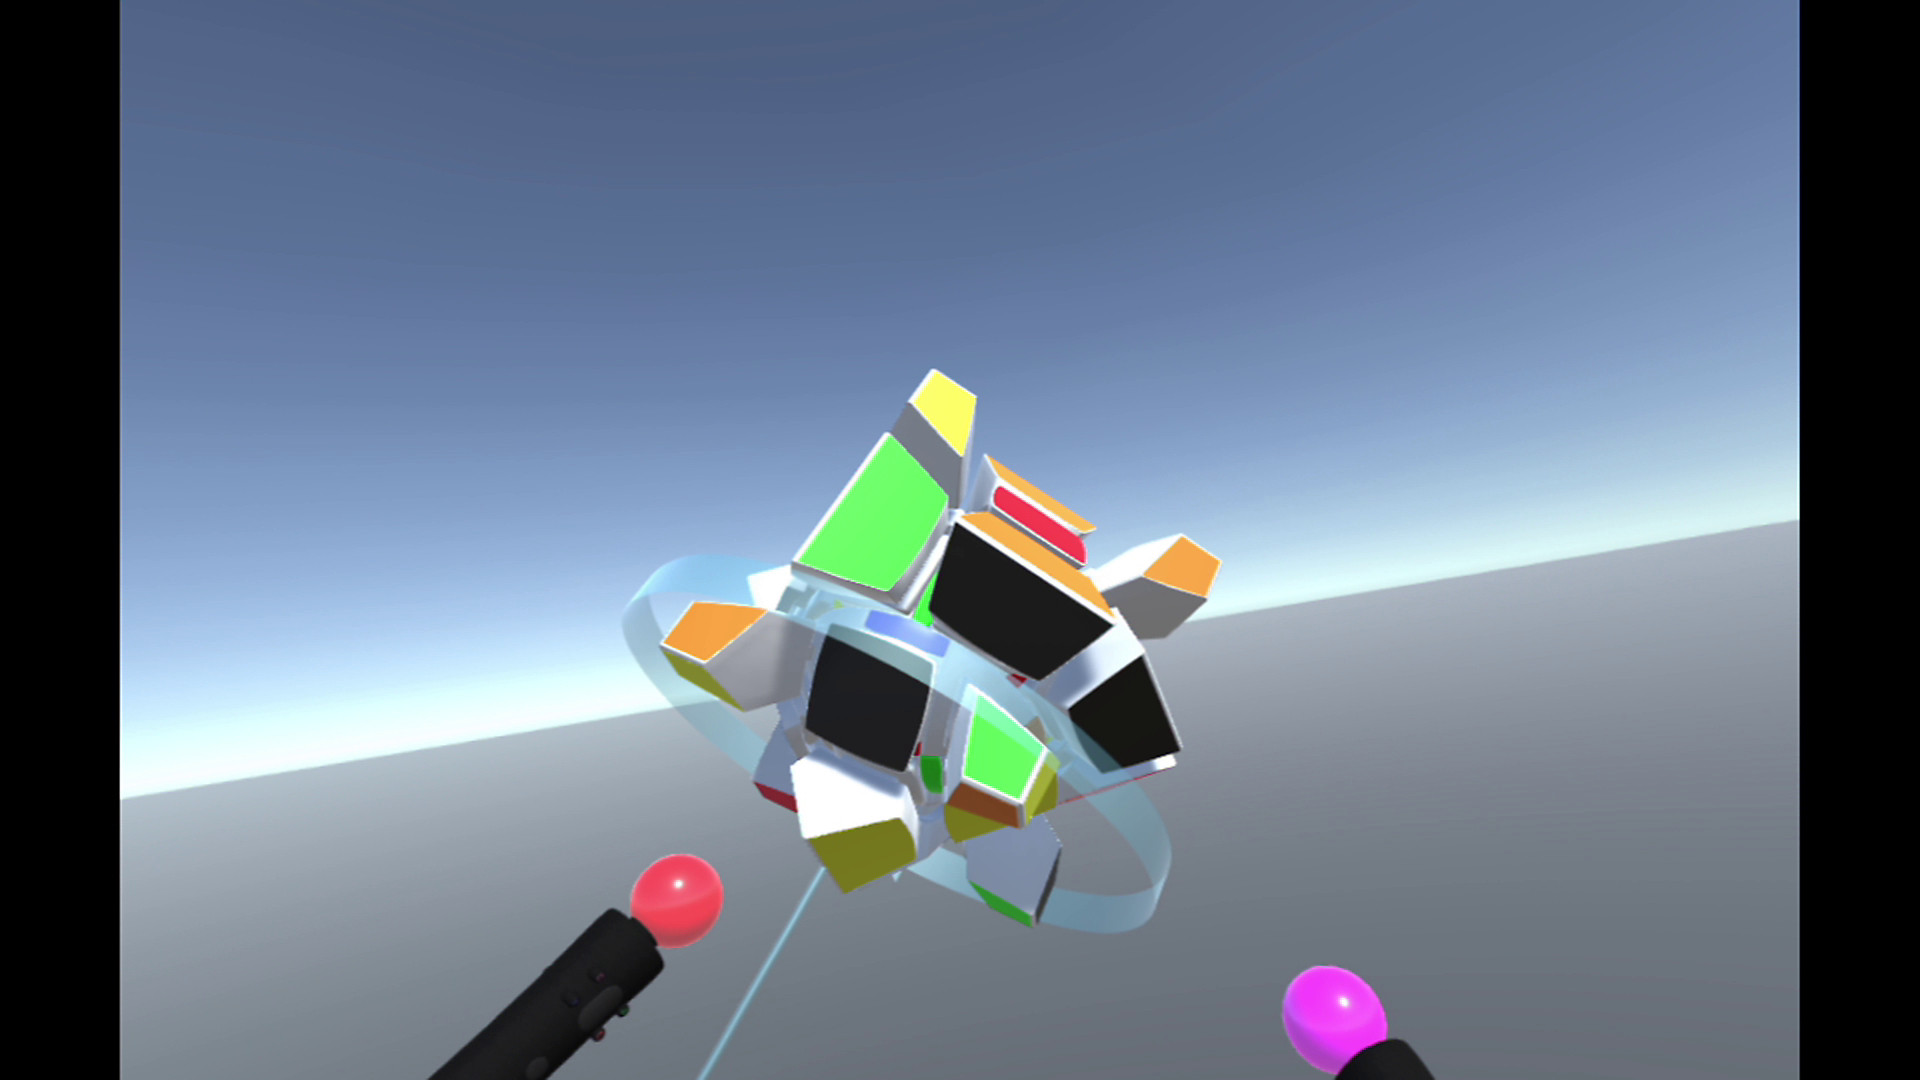 PS Move controllers morphing a colorful block